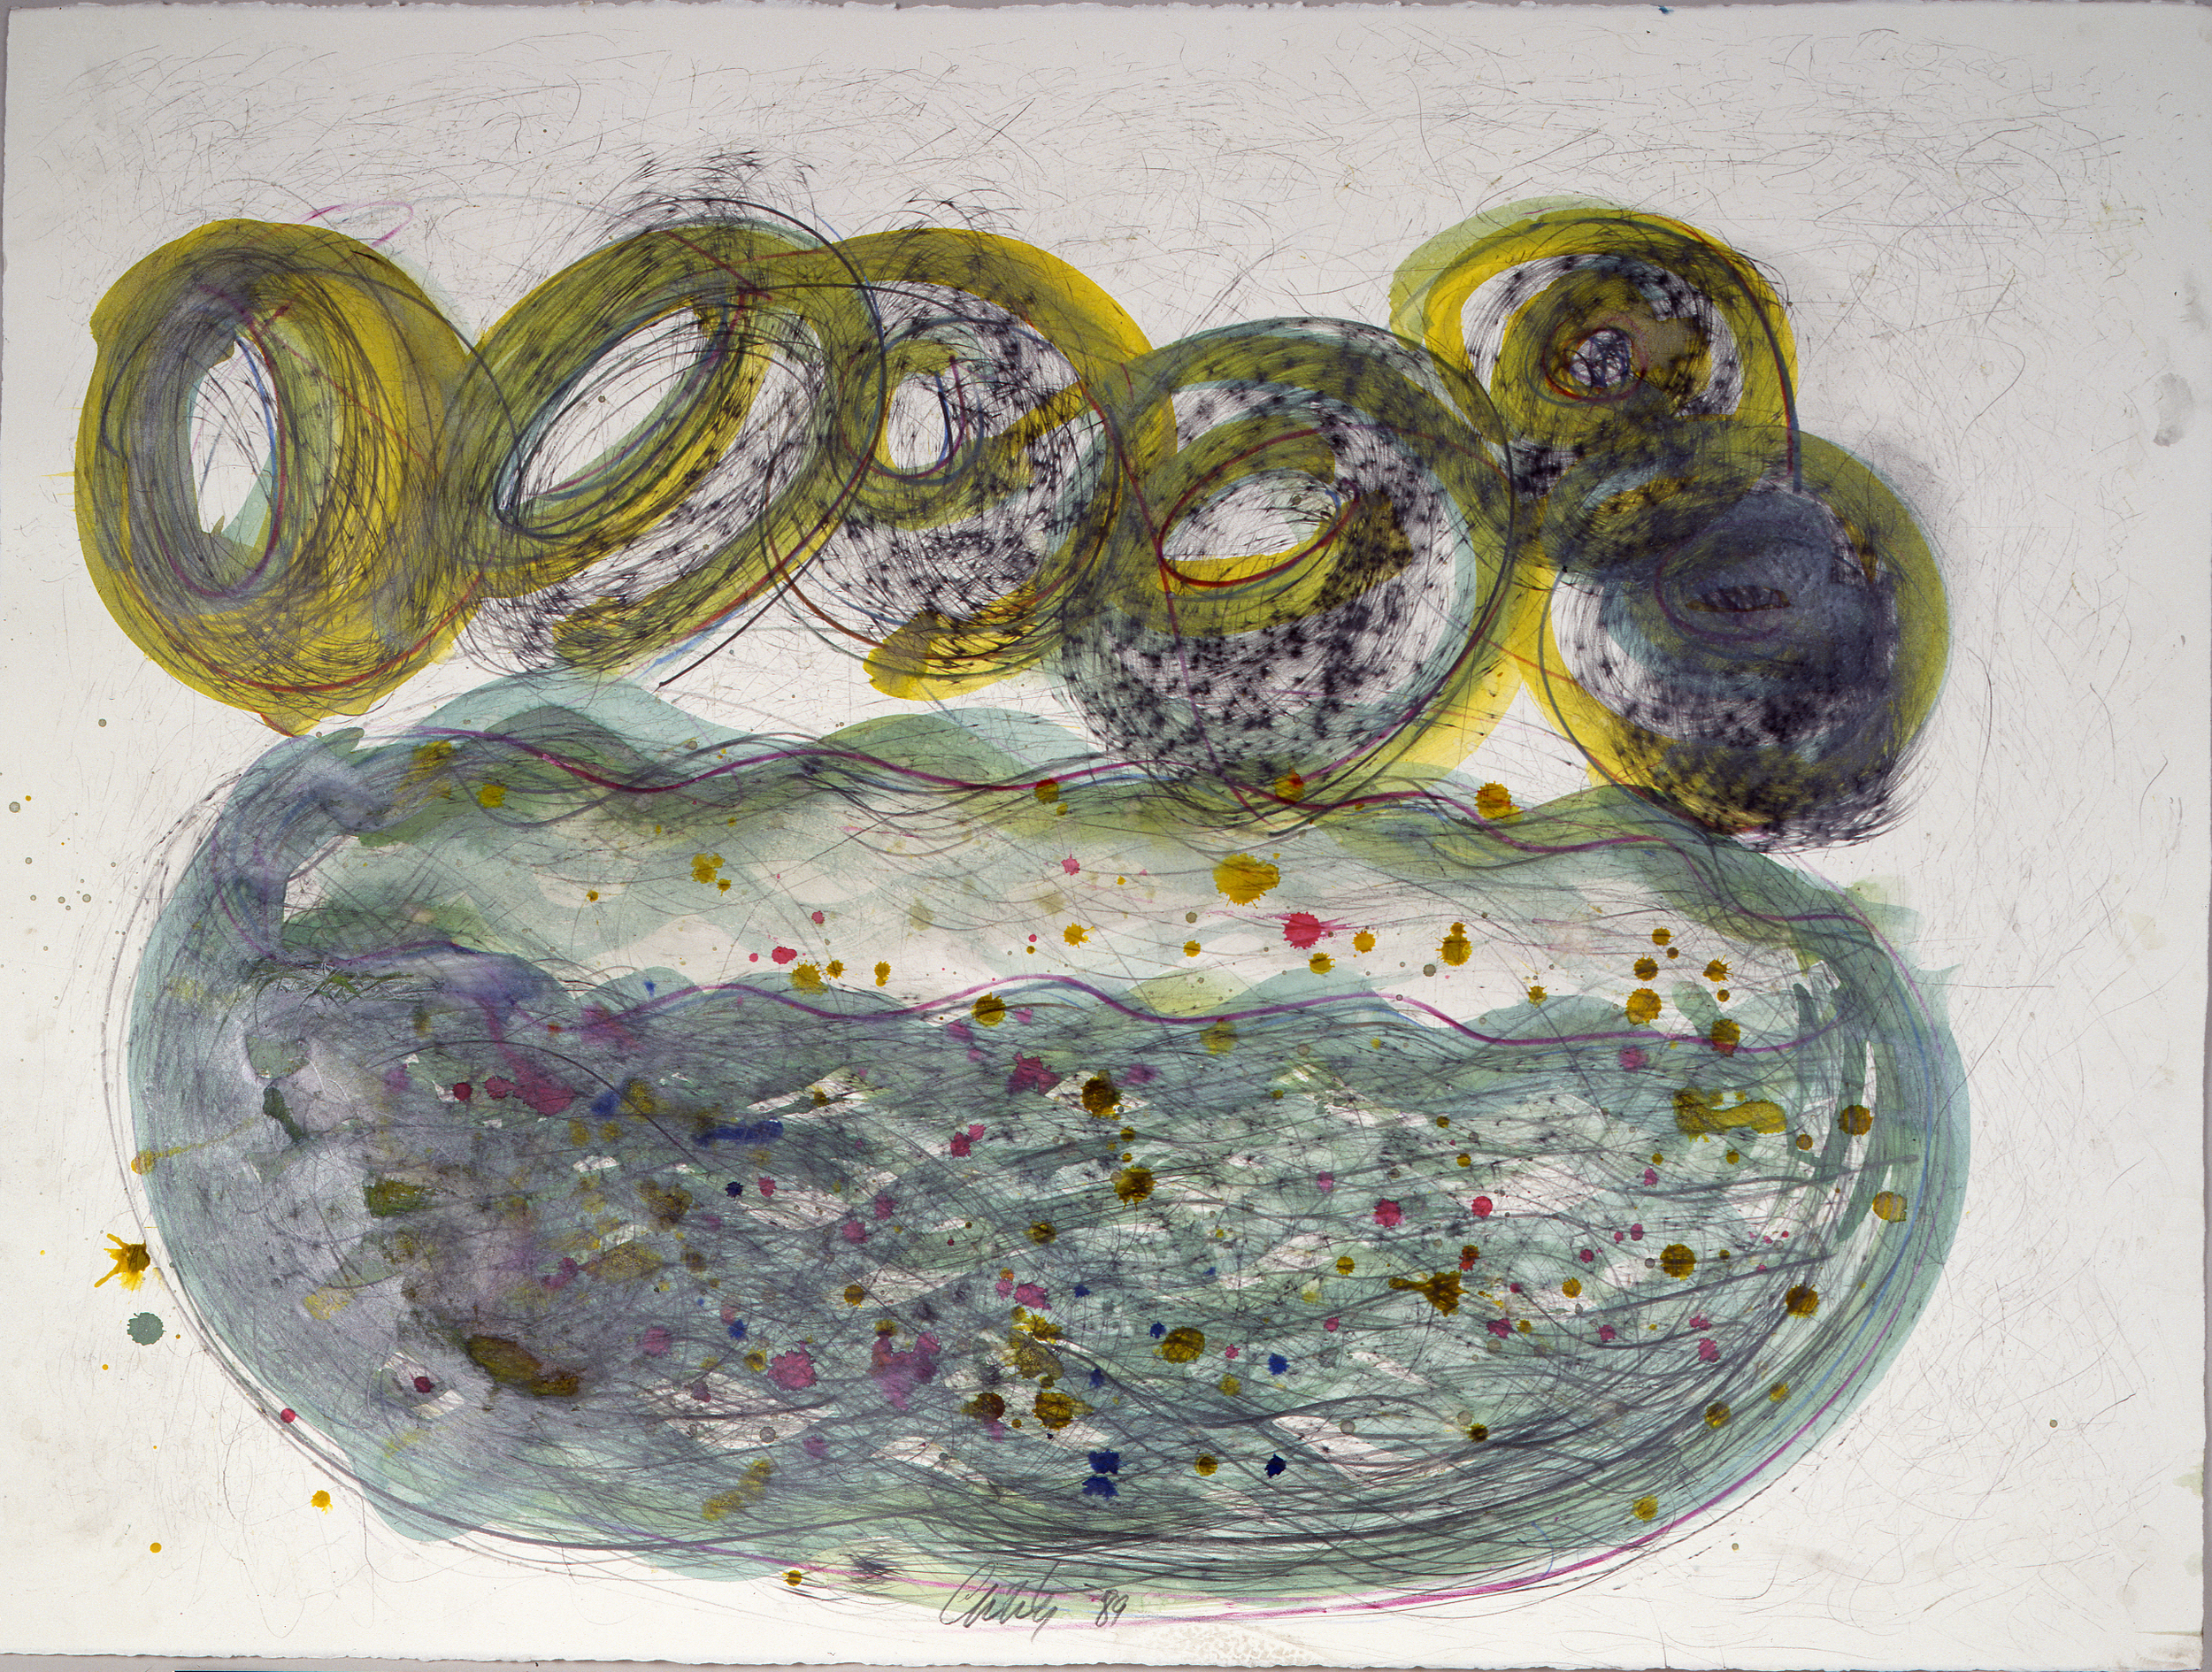 Dale Chihuly, Niijima Drawing #54, (1989, mixed mediaon paper, 22 x 30 inches), DC.374